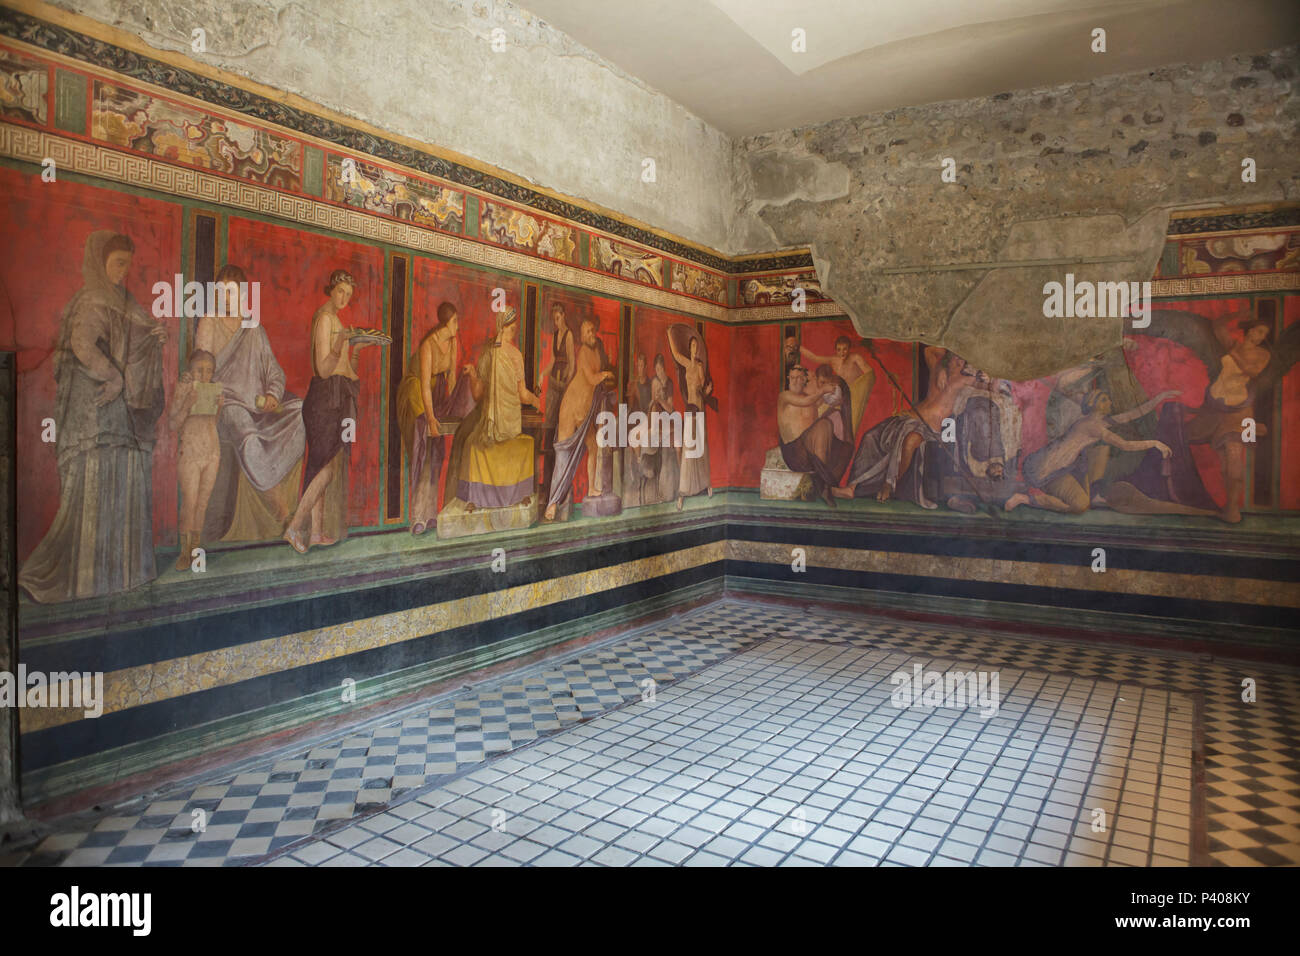 Dionysian Mysteries (Bacchian Mysteries) depicted in the Roman frescos in the triclinium (Roman dining room) in the Villa of the Mysteries (Villa dei Misteri) in the archaeological site of Pompeii (Pompei) near Naples, Campania, Italy. Initiation rite from the mysterious cult of Dionysus (Bacchus) is probably depicted in the frescoes. Stock Photo